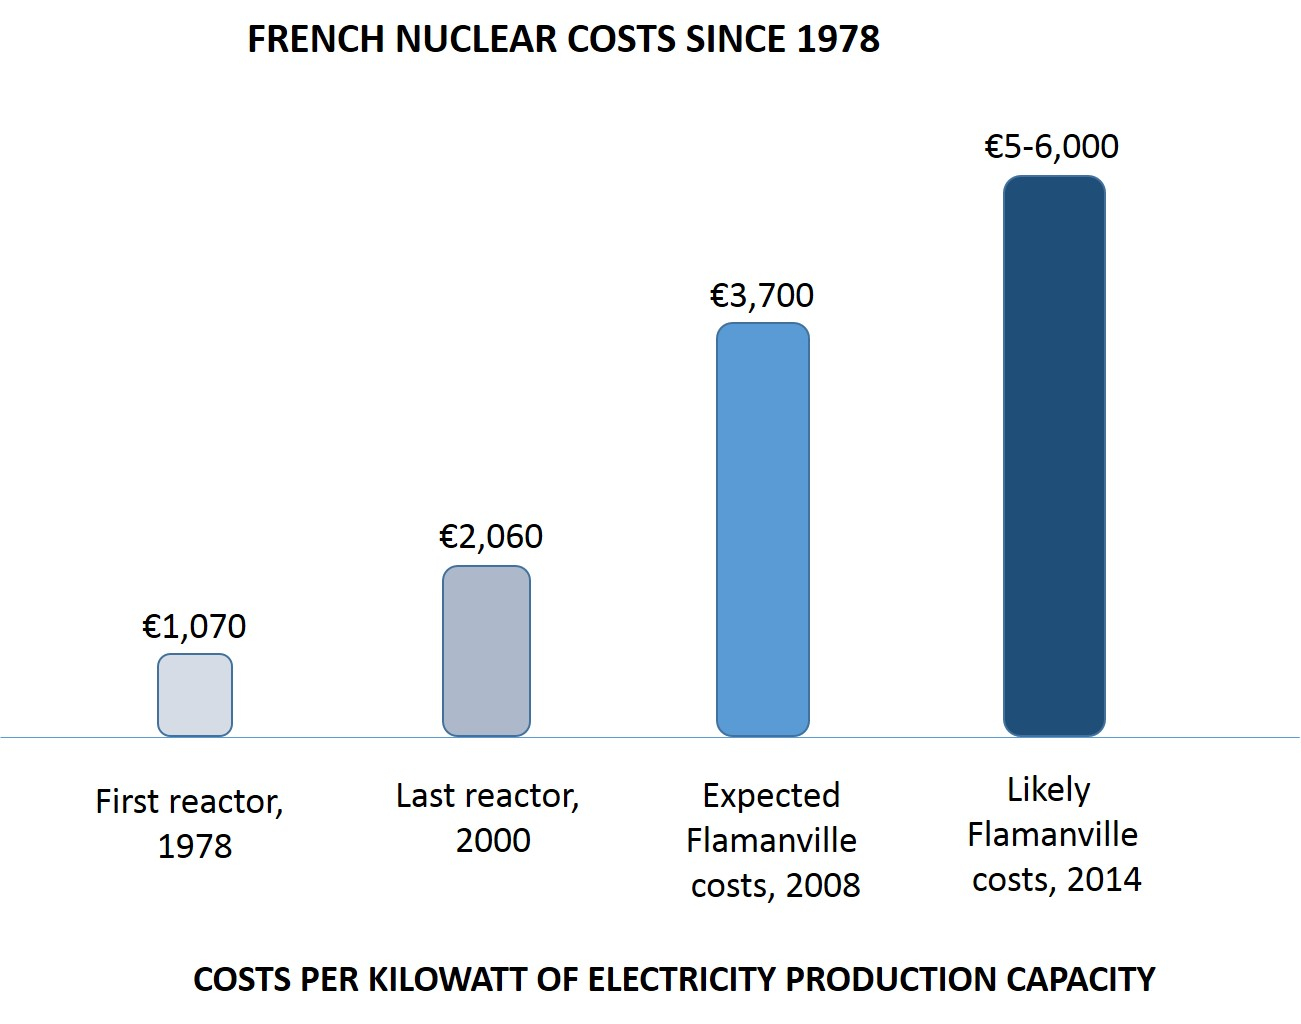 French nuclear